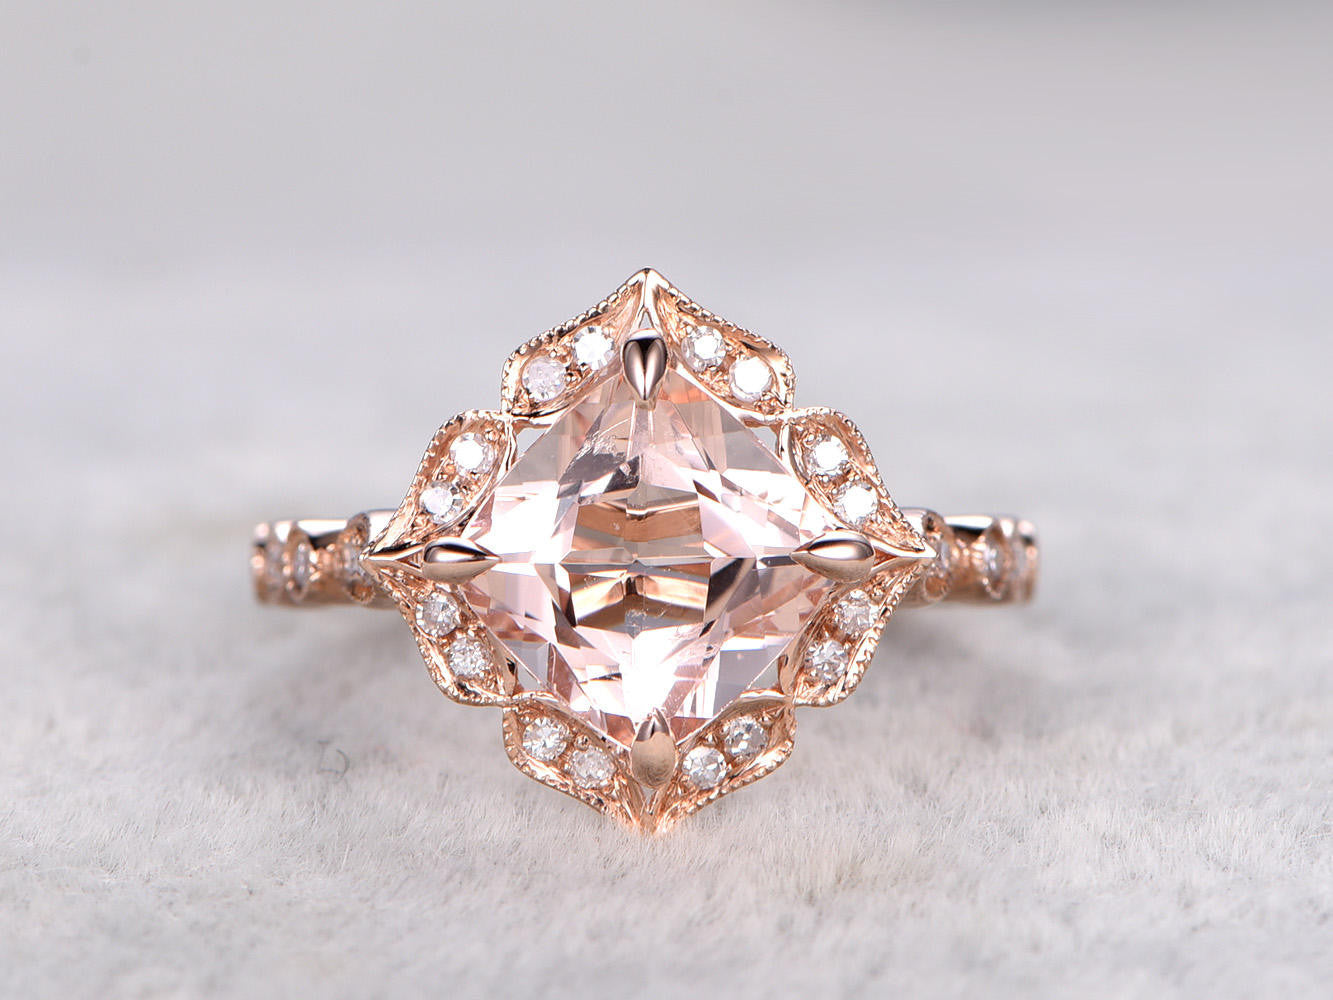 8mm Morganite Bridal Ring,Art Deco Engagement ring 14k Rose gold,Diamond wedding band,Cushion Cut,Promise Ring,milgrain,Retro Vintage Floral